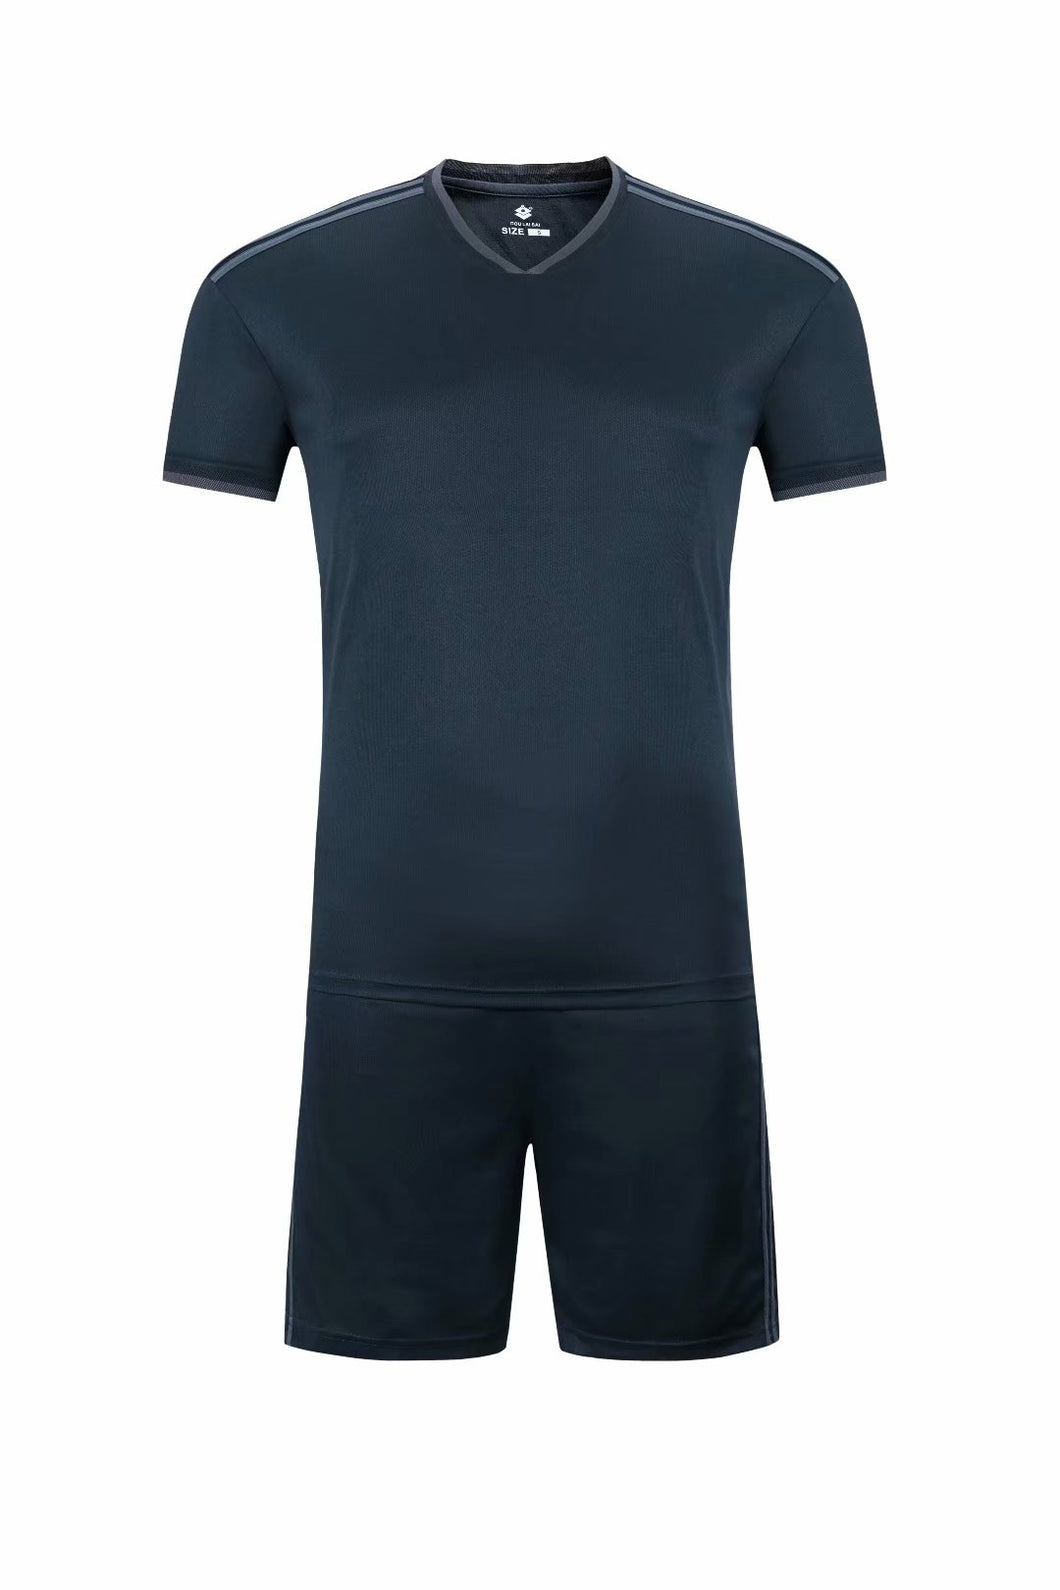 Full Football Kit - Dark Blue top and shorts